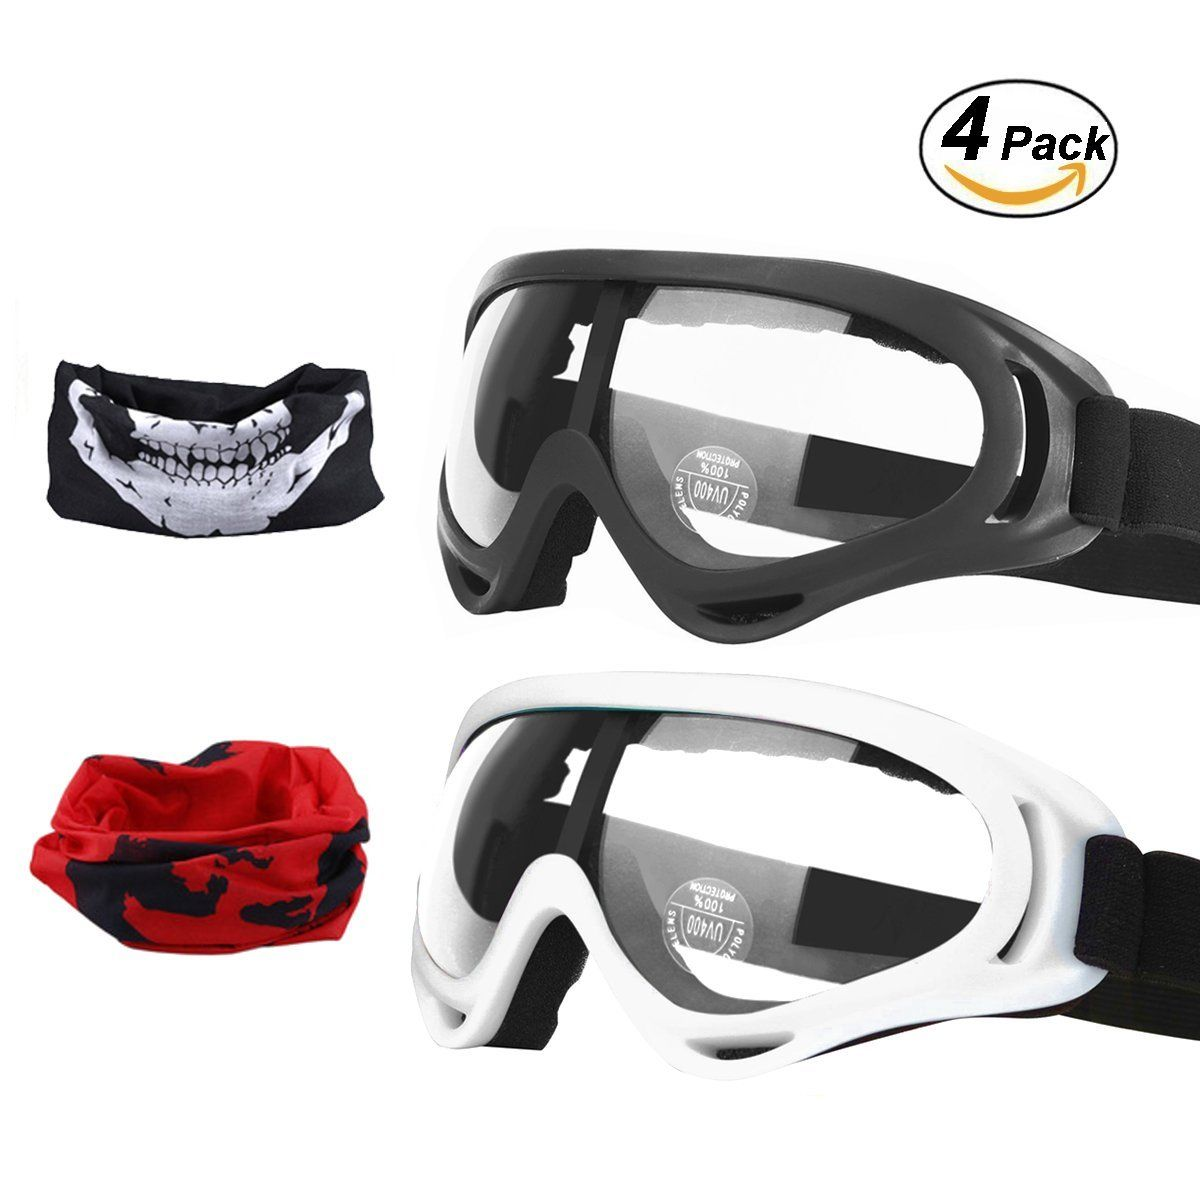 Mask is not a protective device. Set includes reusable display box,  blaster, face mask, and 7 NERF RIVAL foam rounds. Available exclusively at  Gamestop.